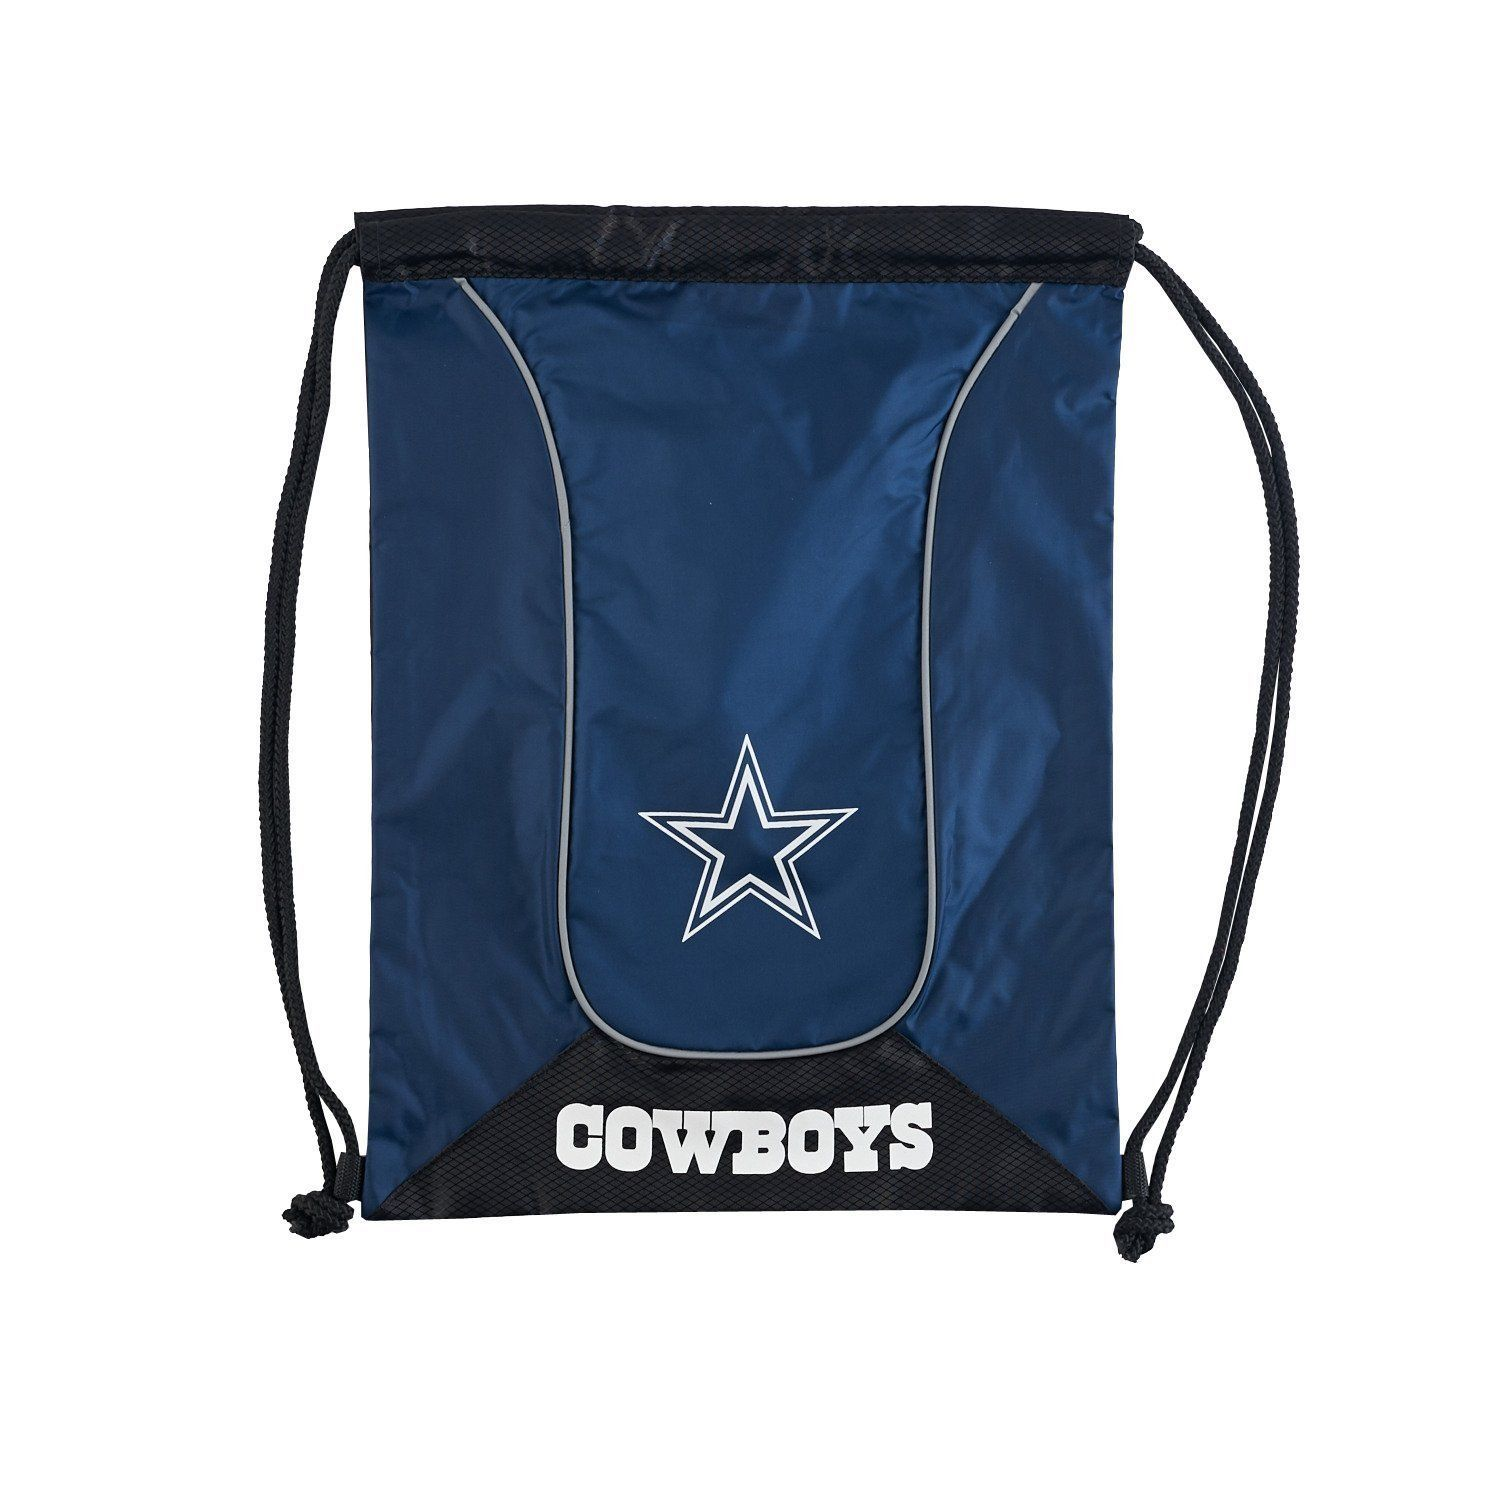 DALLAS COWBOYS DOUBLEHEADER BACK SACK PACK SCHOOL GYM BAG NFL FOOTBALL